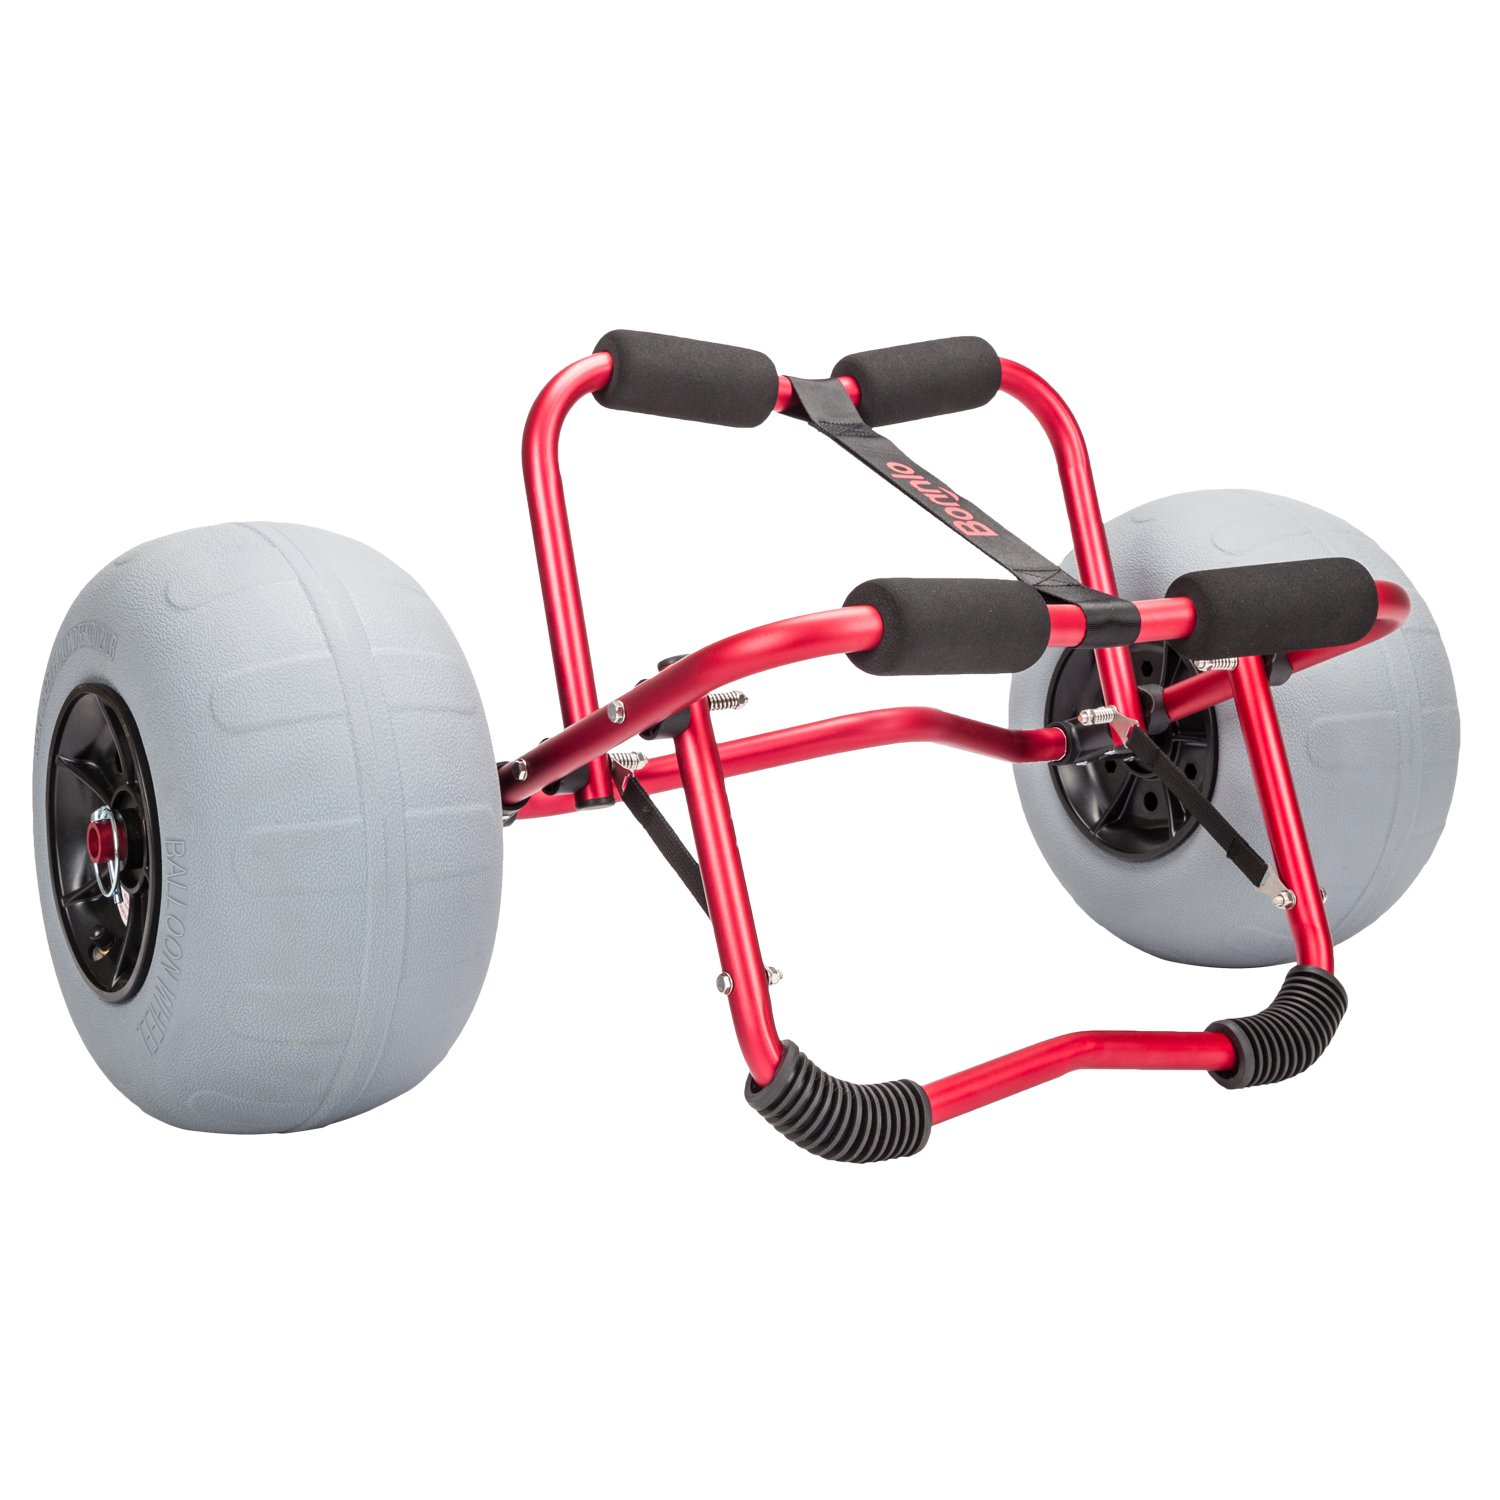 Bonnlo Kayak Canoe Boat Cart Carrier Dolly Trolley with 12'' Big Beach Balloon Tires Wheels - Free Pump and Strap - Perfect for Soft Sand